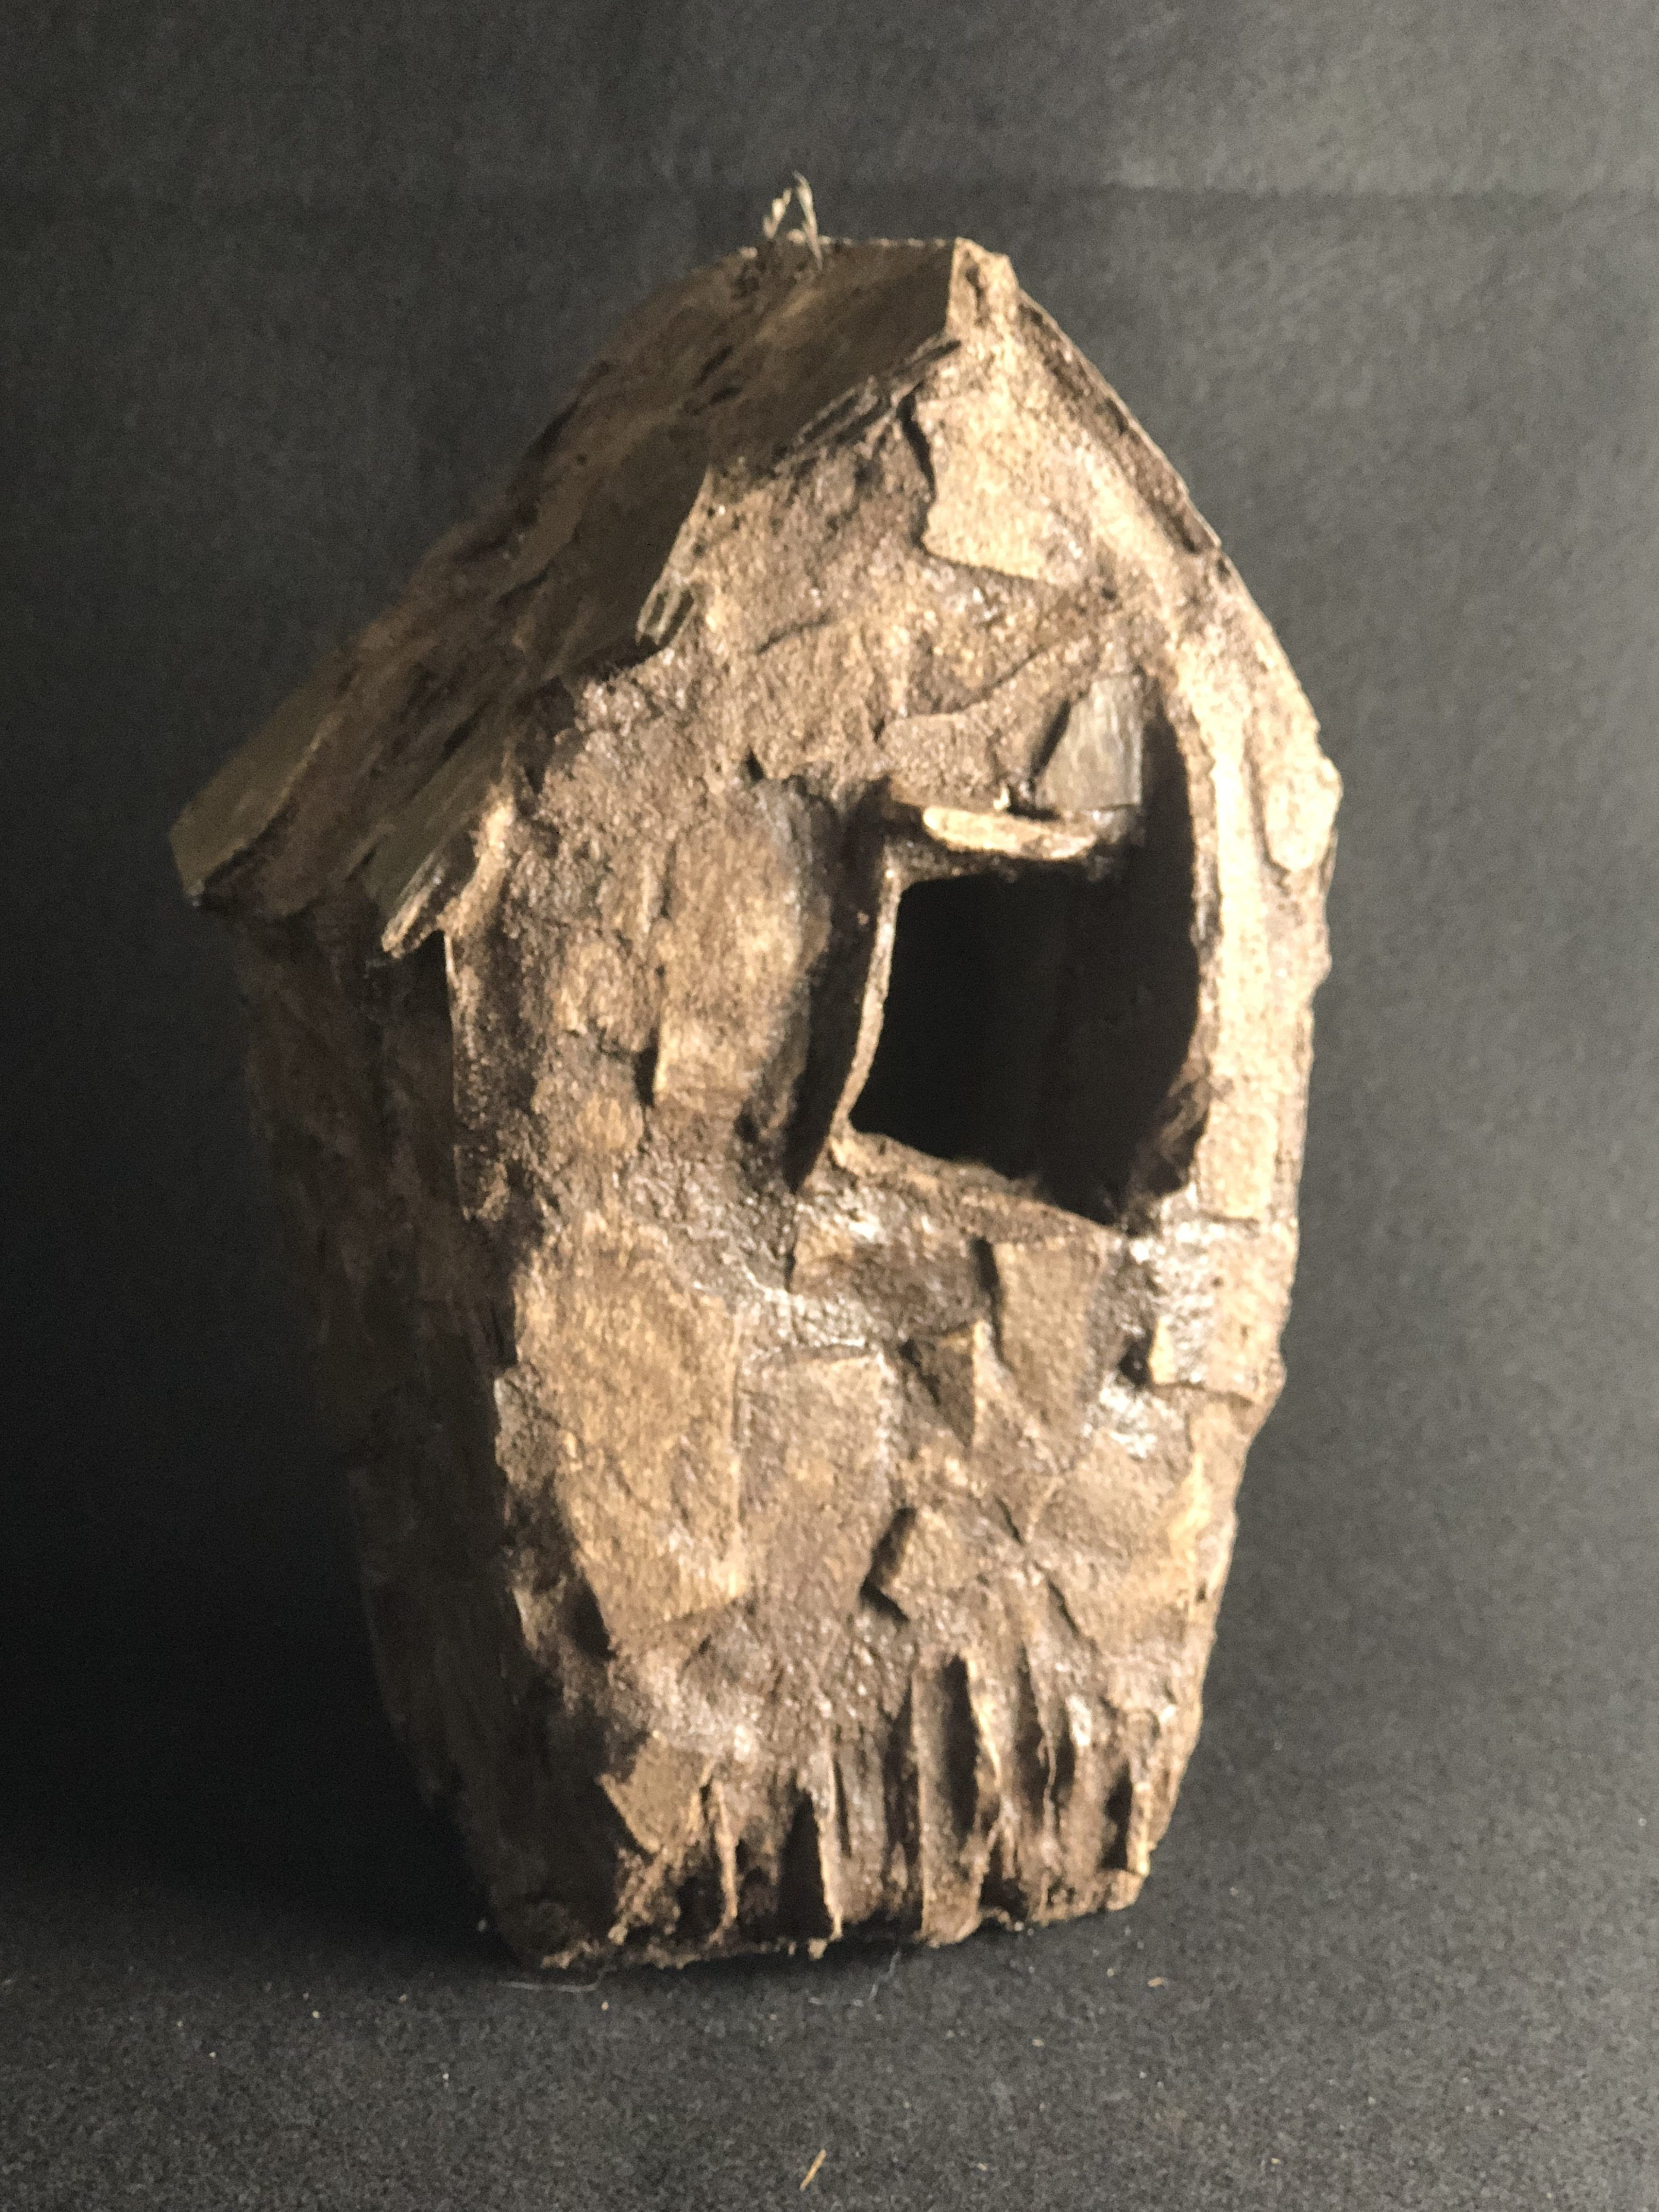 Stone Home, a Scattering Cremation Urn